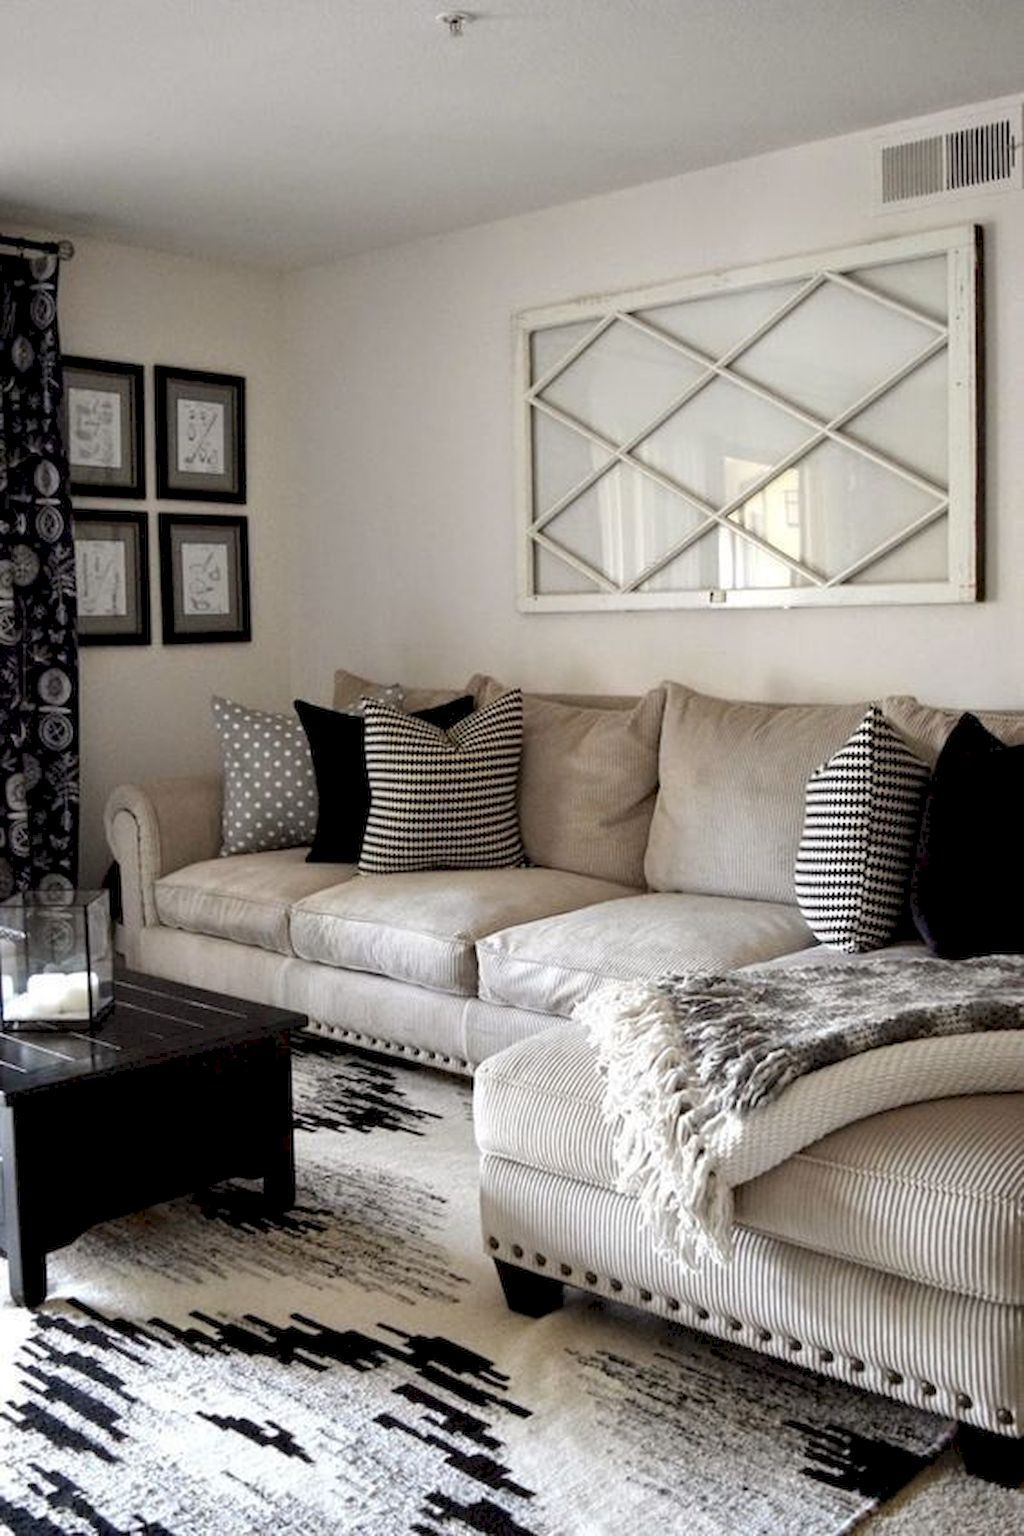 Adorable 36 Small Living Room Ideas On a Budget https://besideroom ...